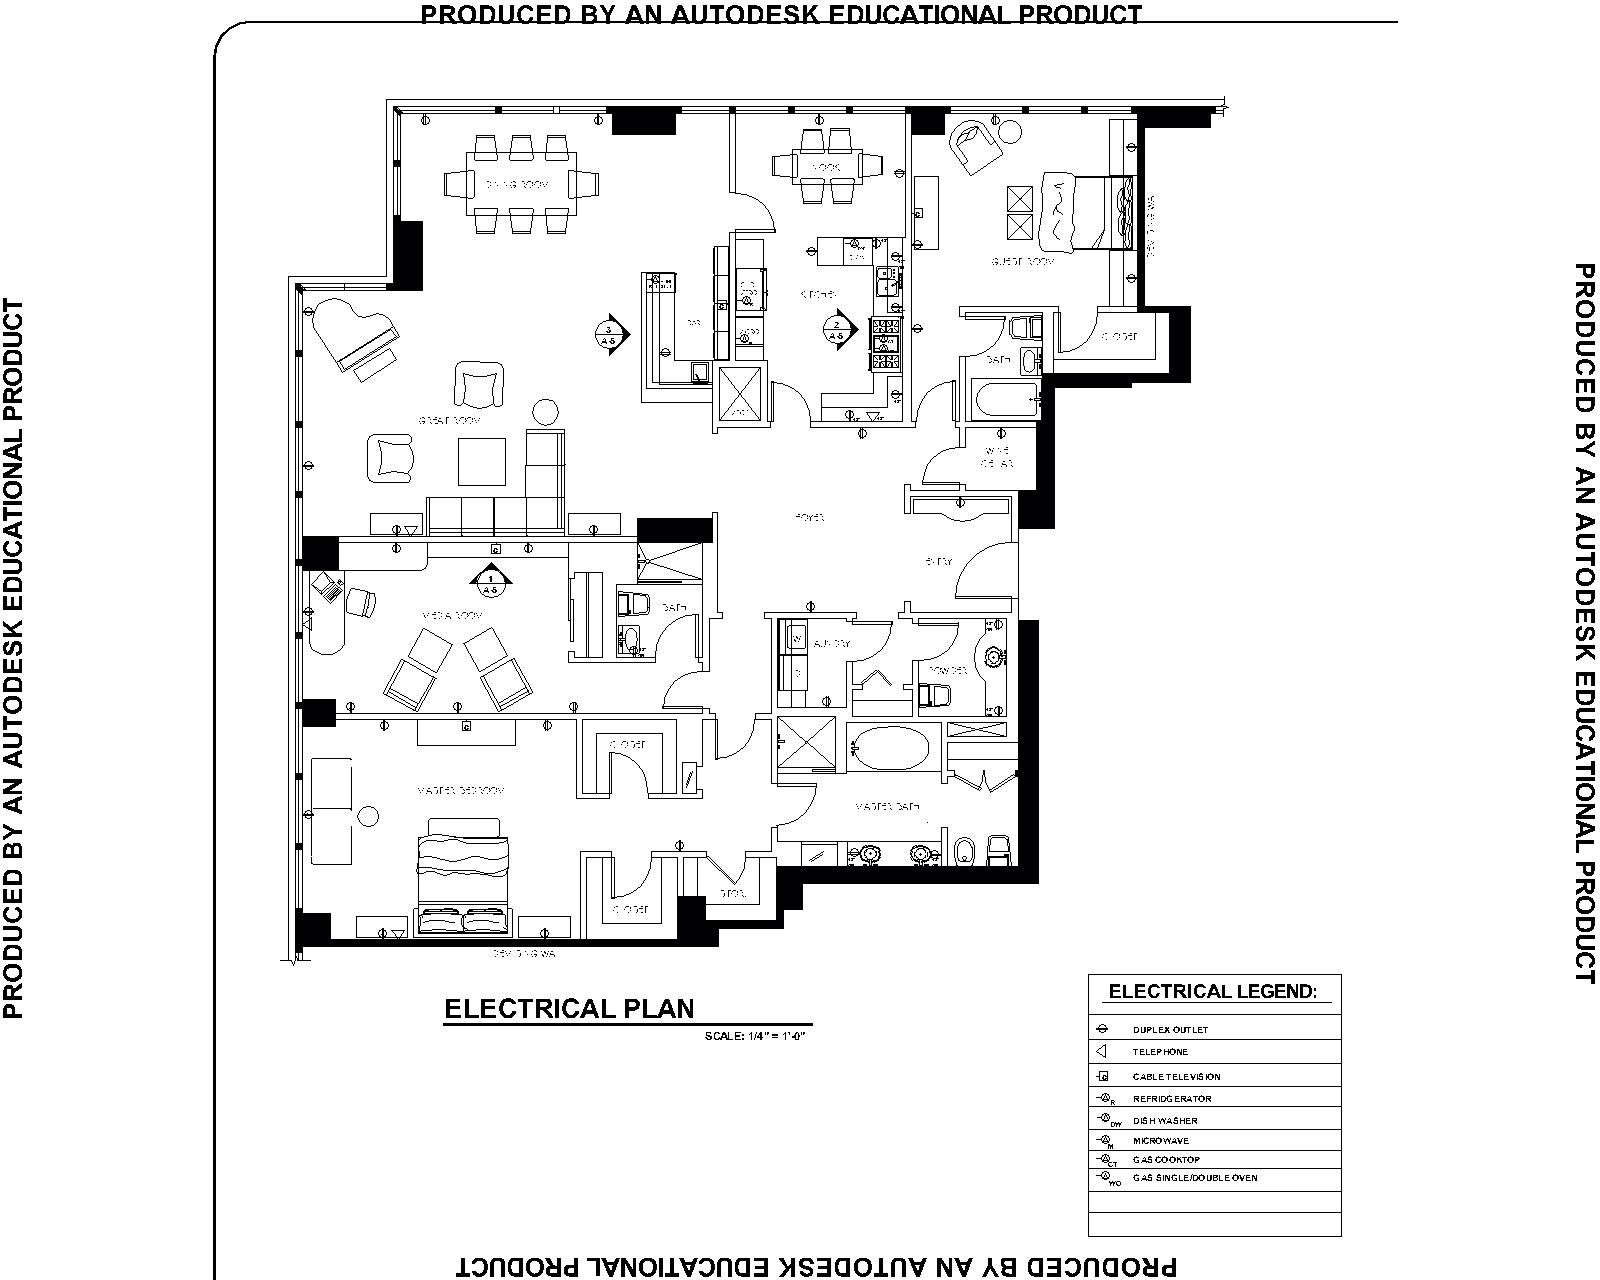 electrical plan how to